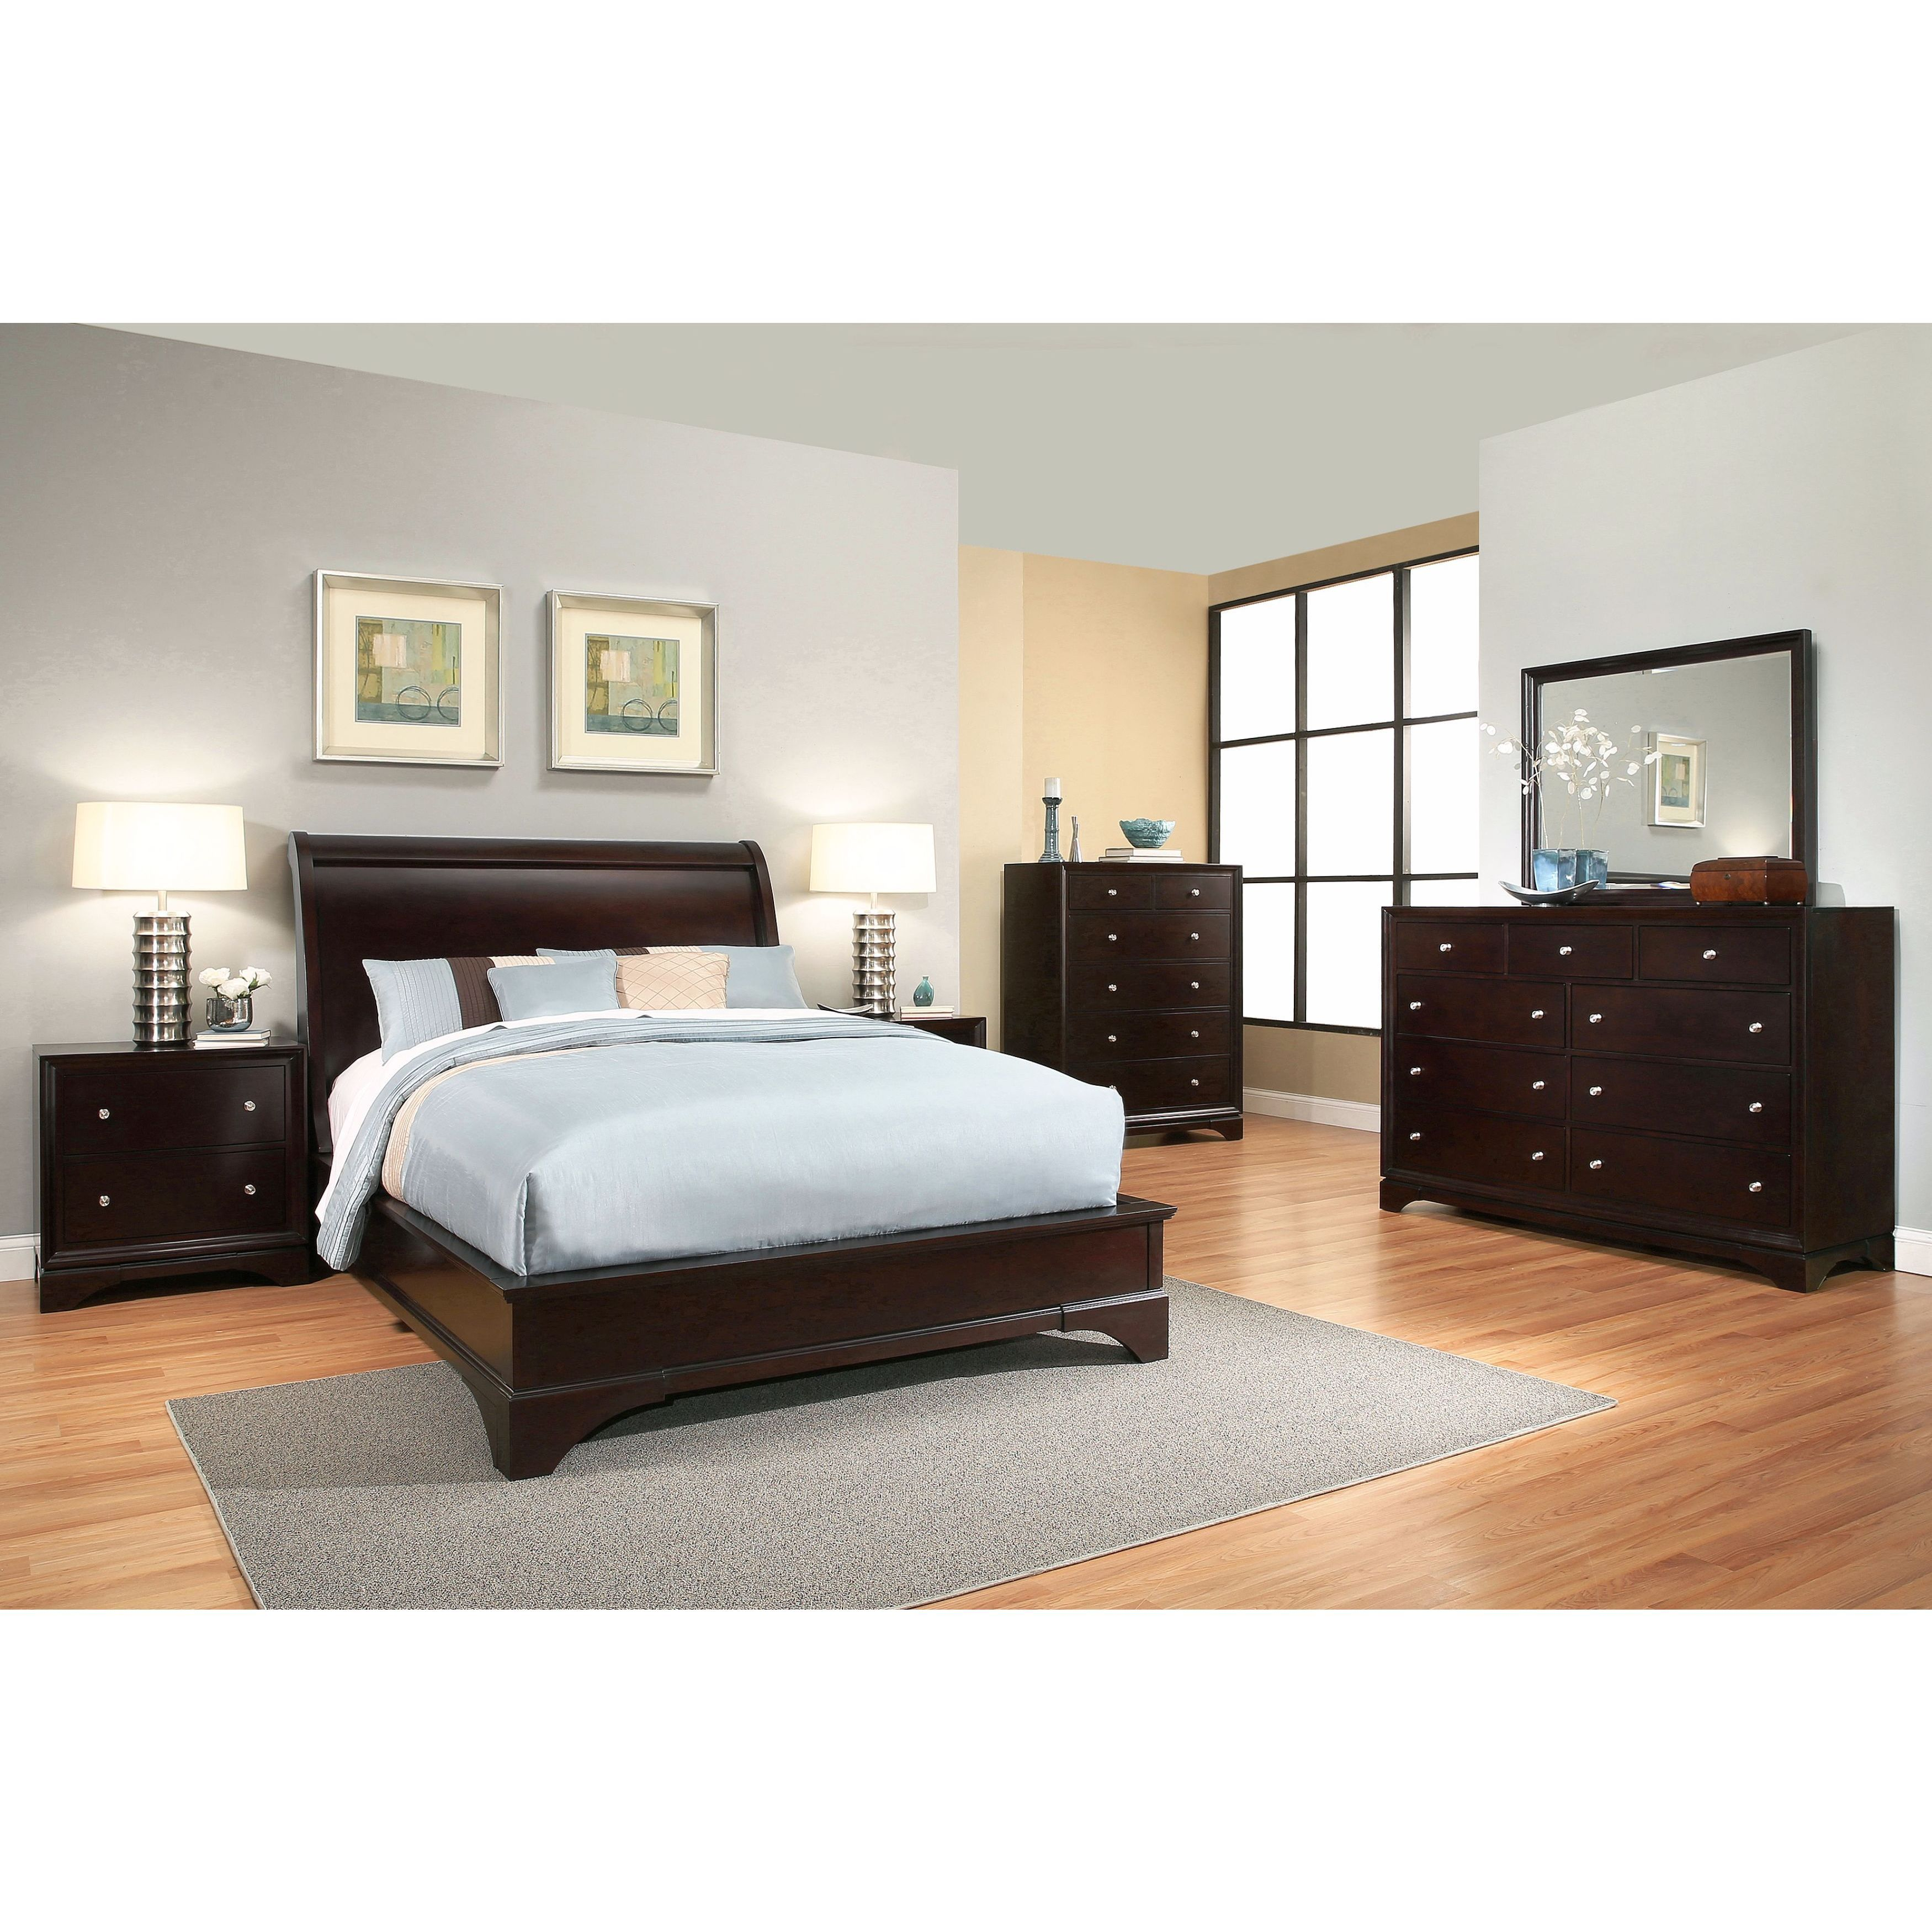 Abbyson sydney 6 piece espresso wood bedroom set - Espresso brown bedroom furniture ...